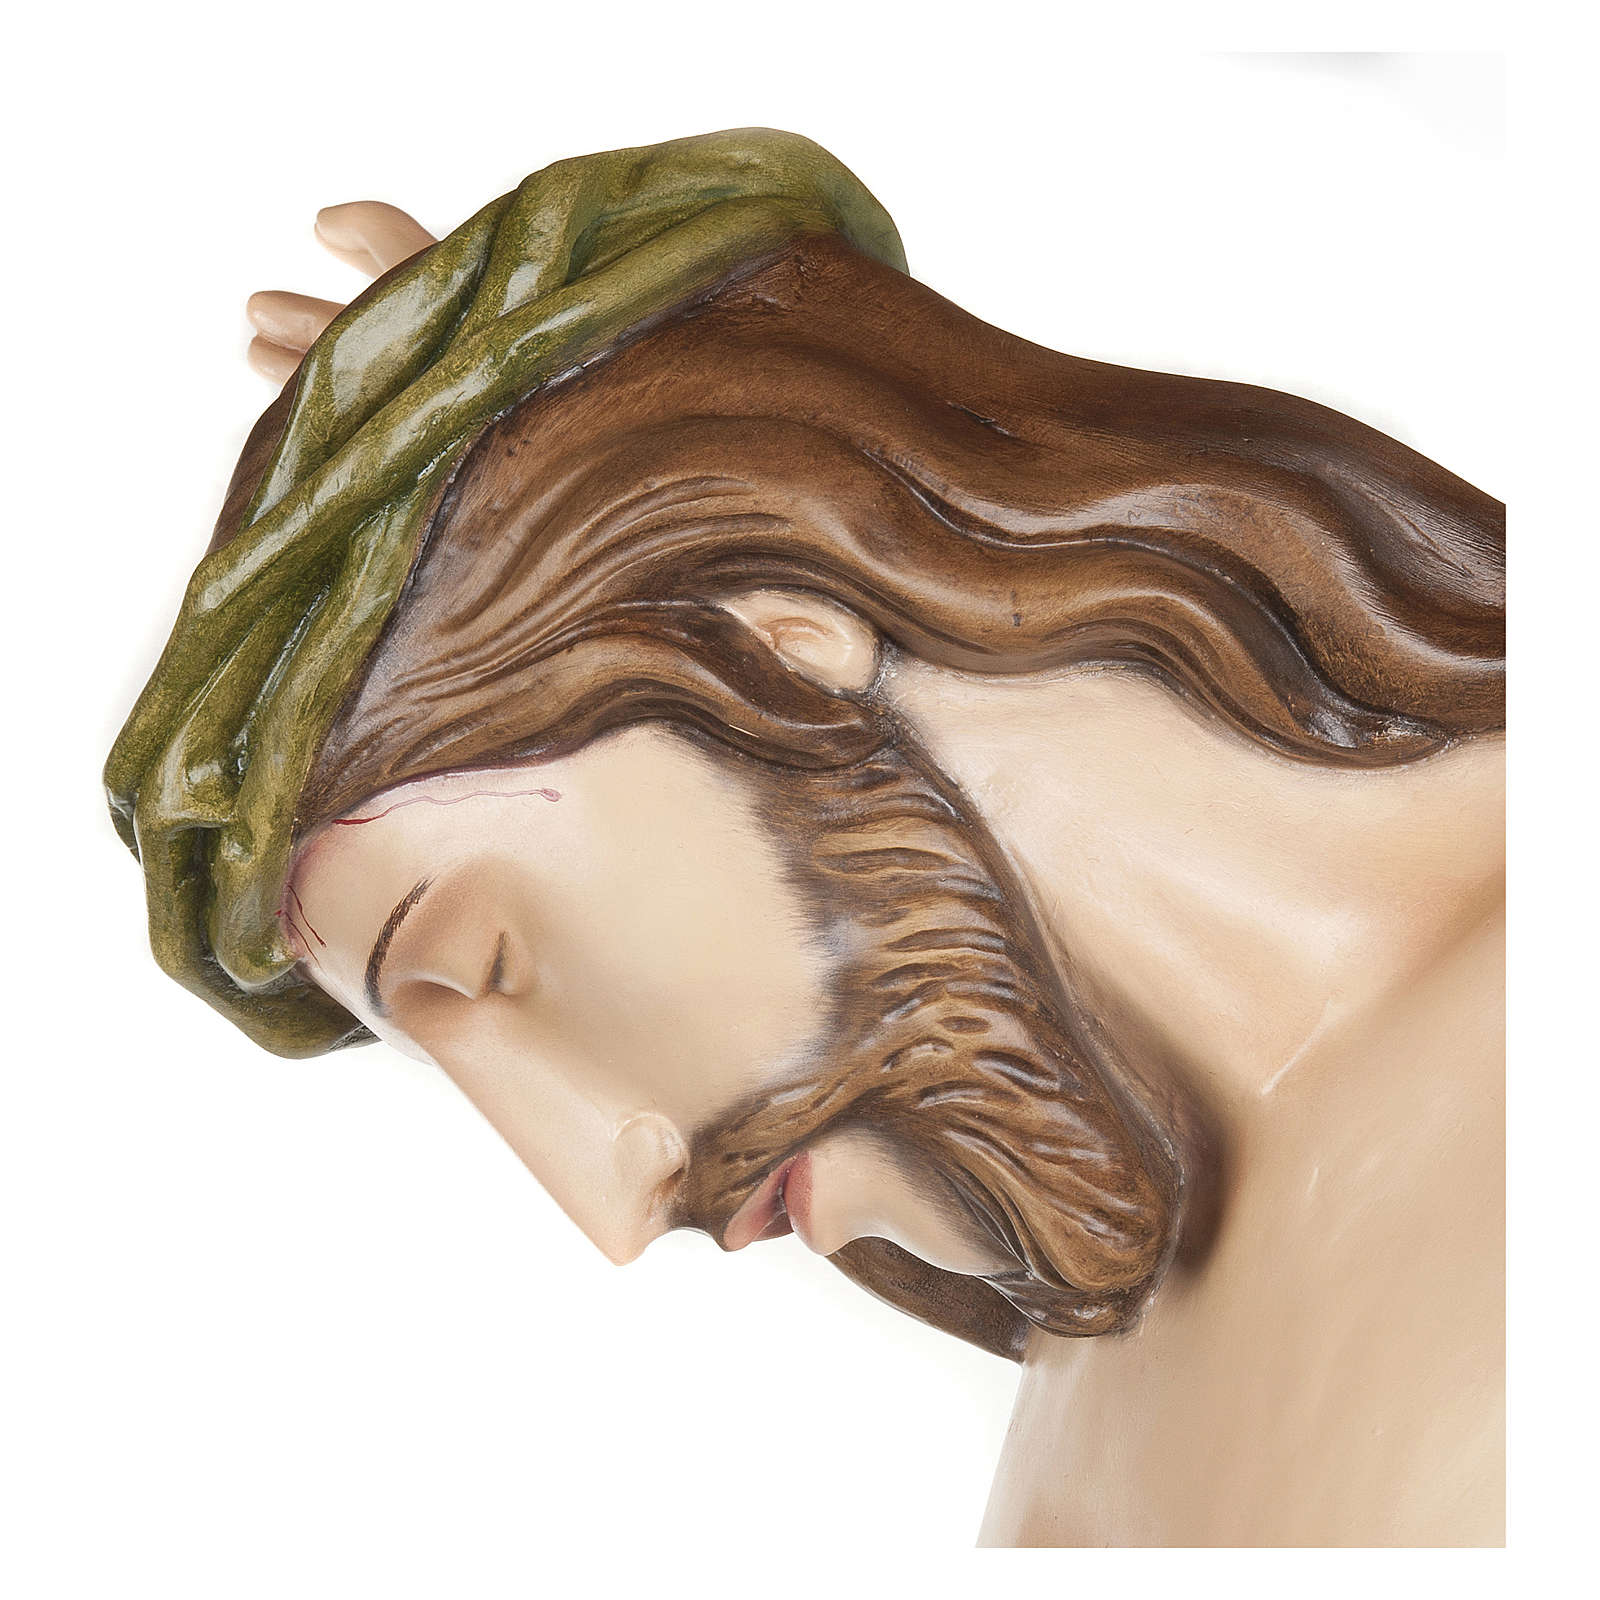 Statue of the Body of Christ in fibreglass 150 cm for EXTERNAL USE 4